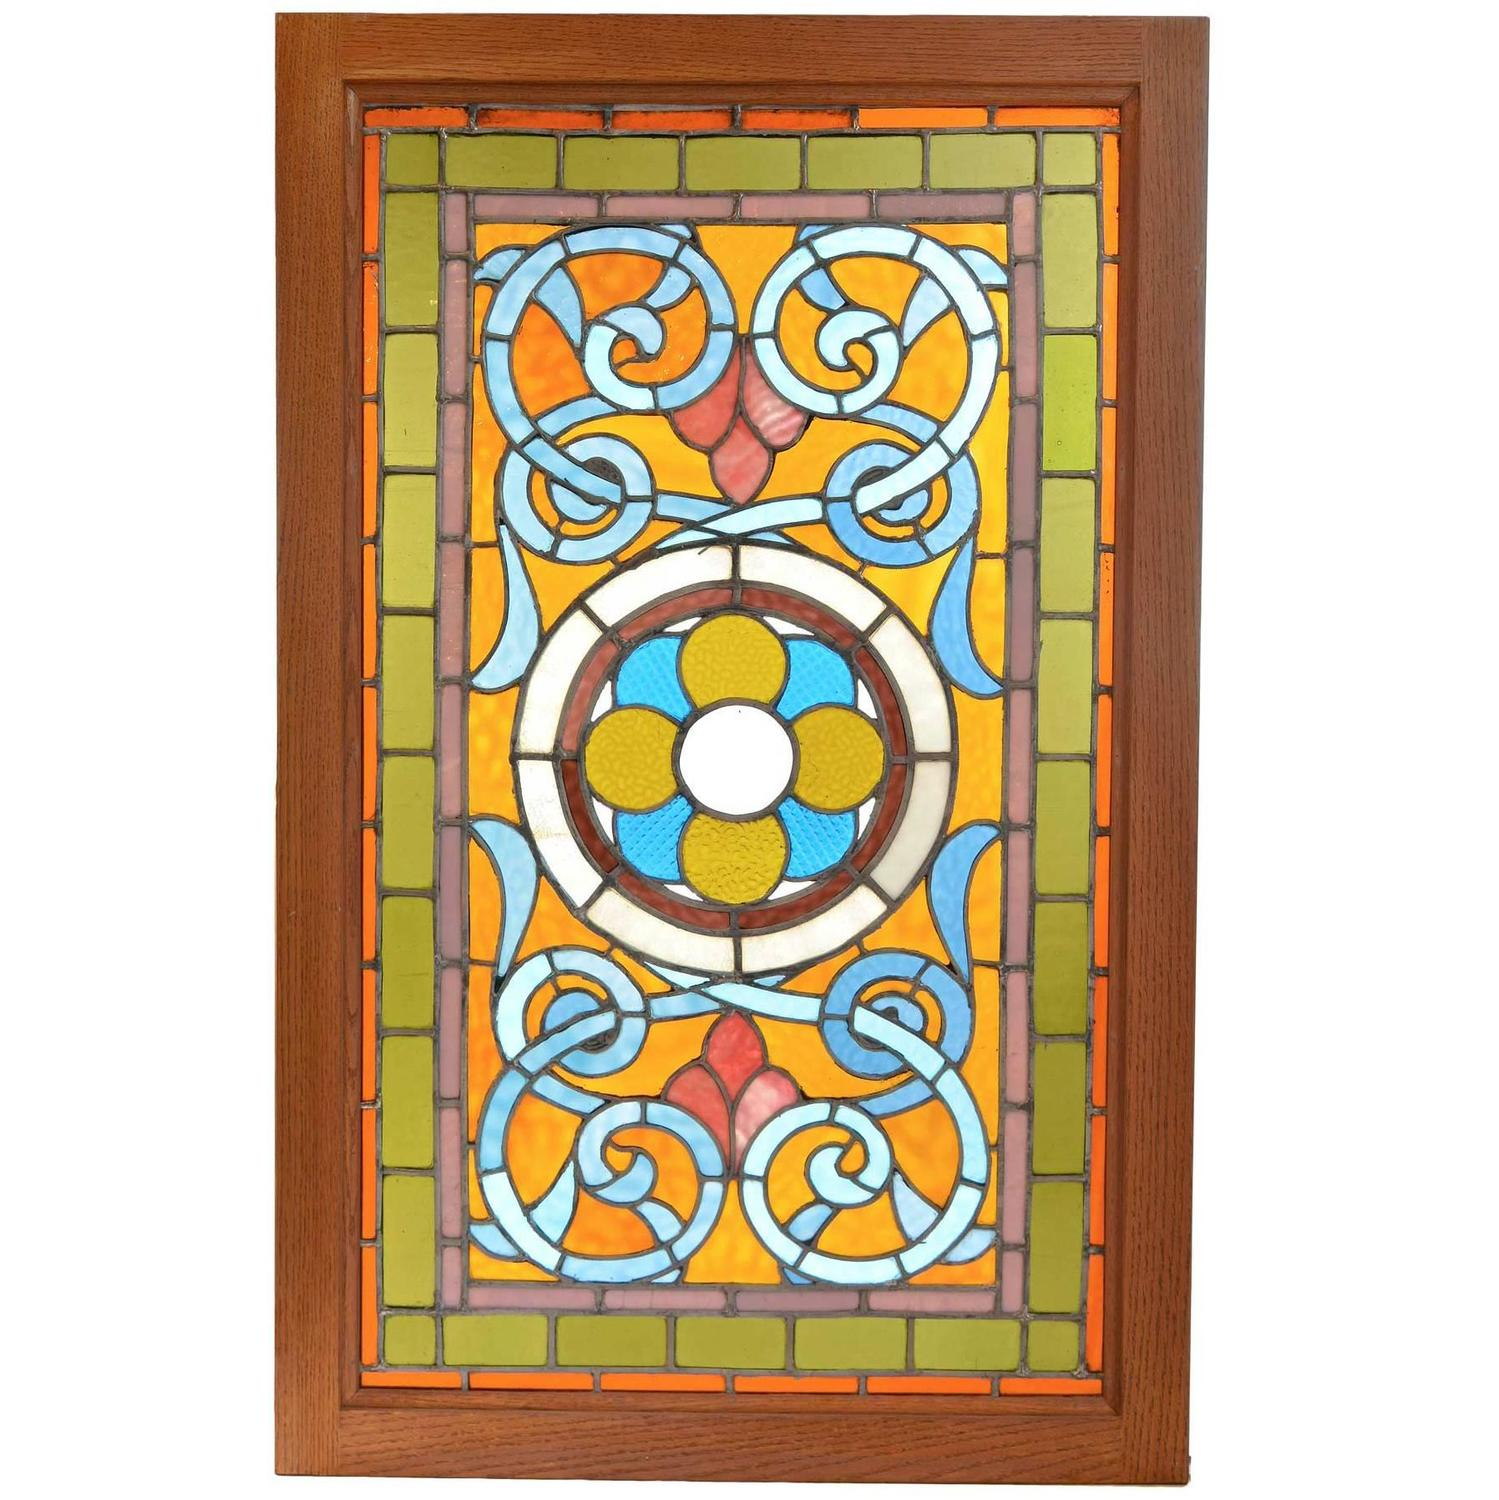 Stained Glass Windows - 188 For Sale on 1stdibs